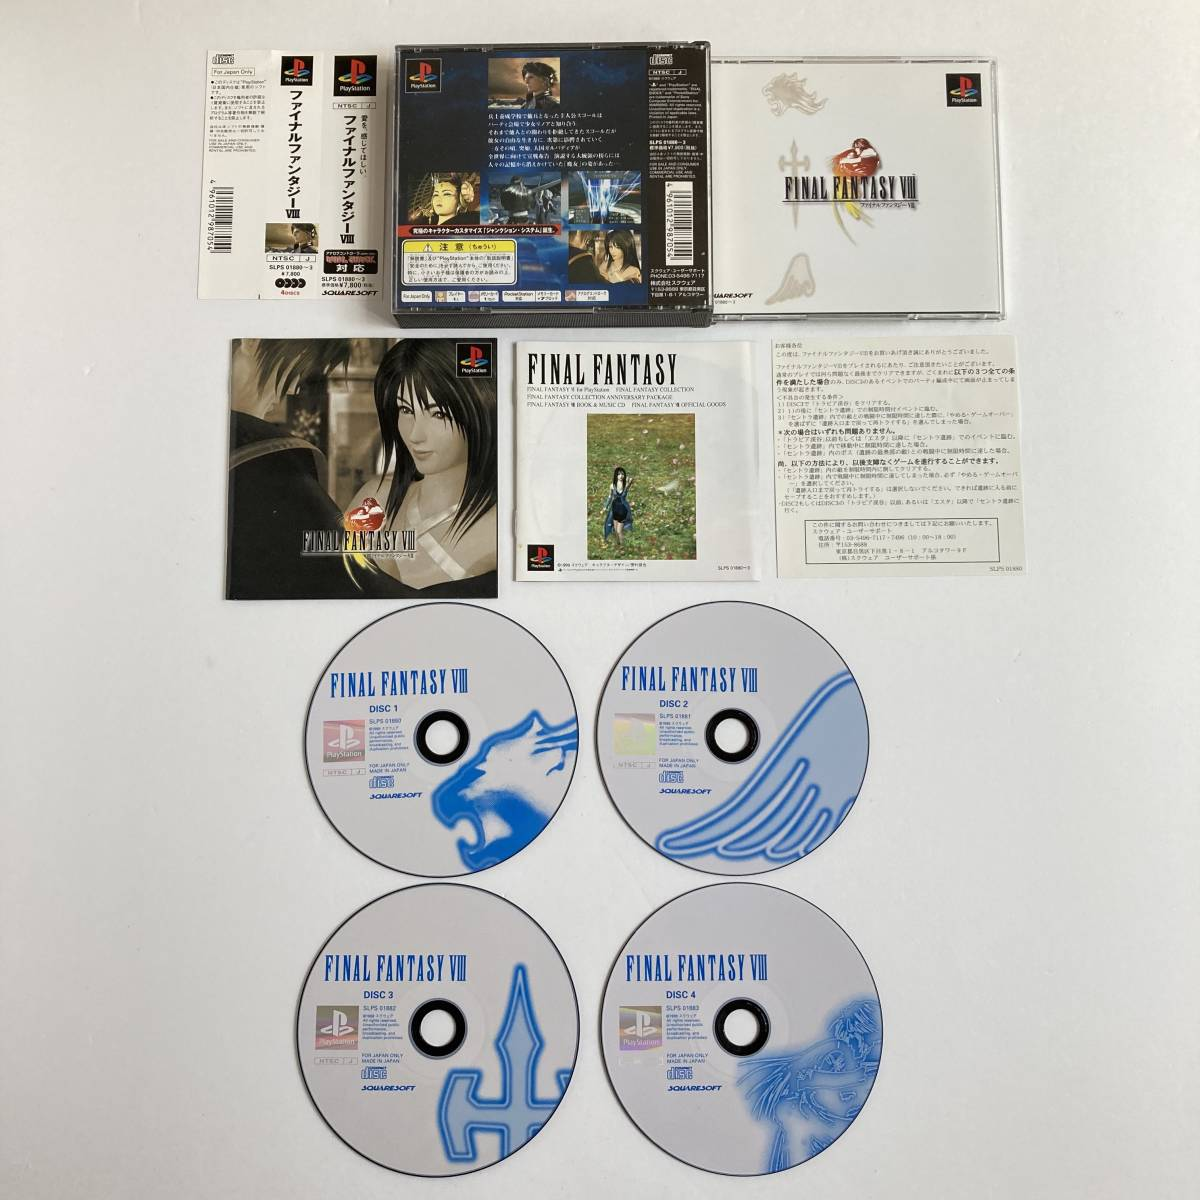 PS ファイナルファンタジー 7 8 9 帯付き 3本セット / Lot 3 PS1 Final Fantasy VII VIII IX 7 8 9 Square Playstation 1 Japan Game Spine